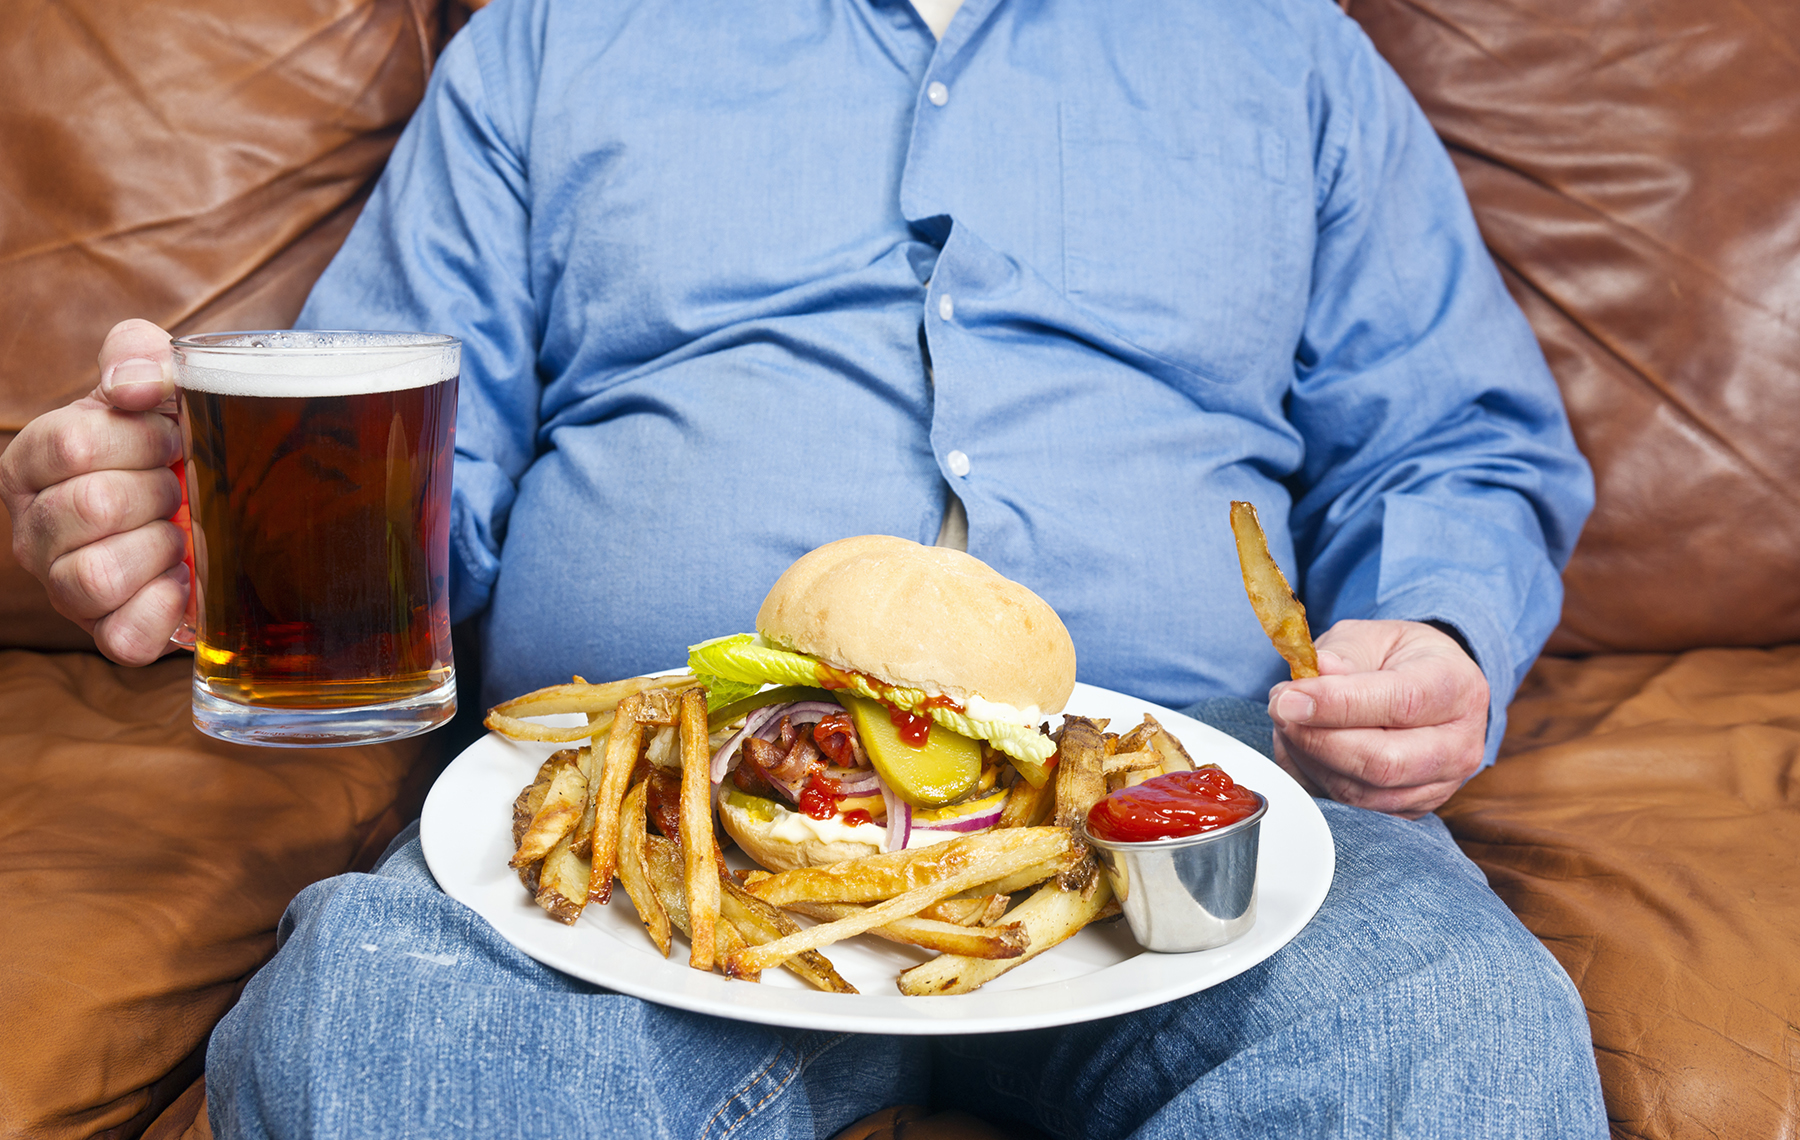 AltaMed chubby man sitting on couch with burger fries and beer